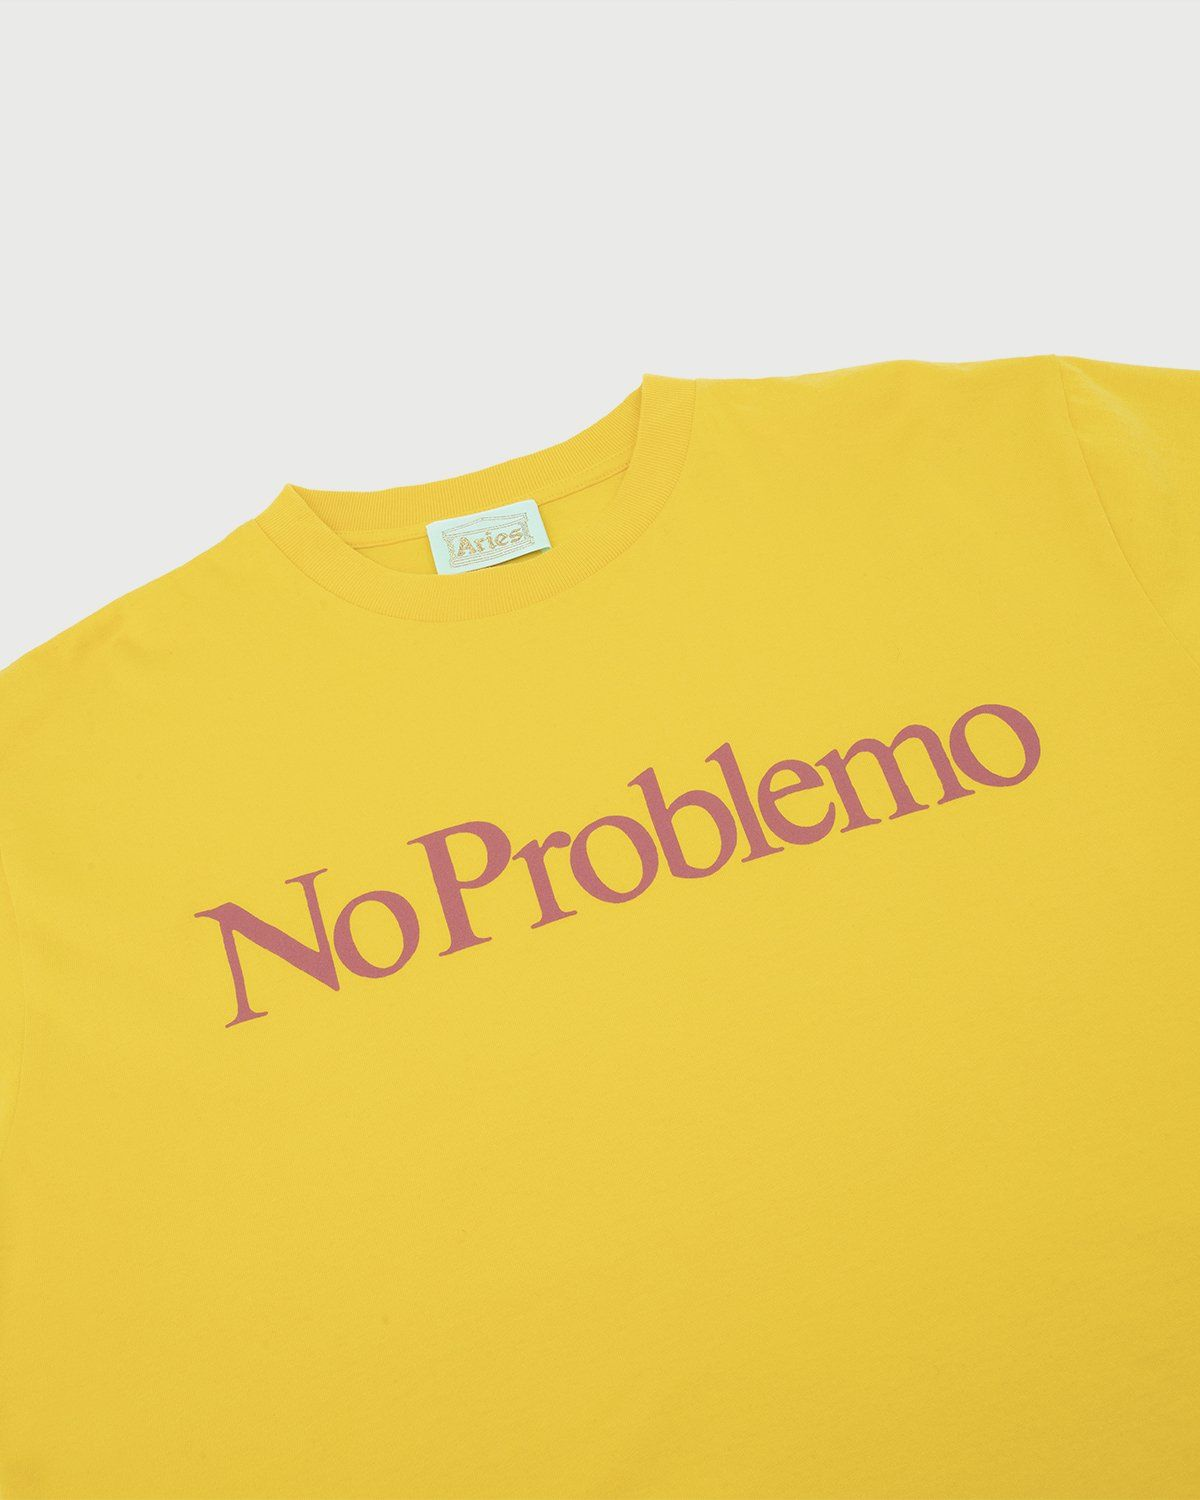 Aries - No Problemo Tee Yellow - Image 2